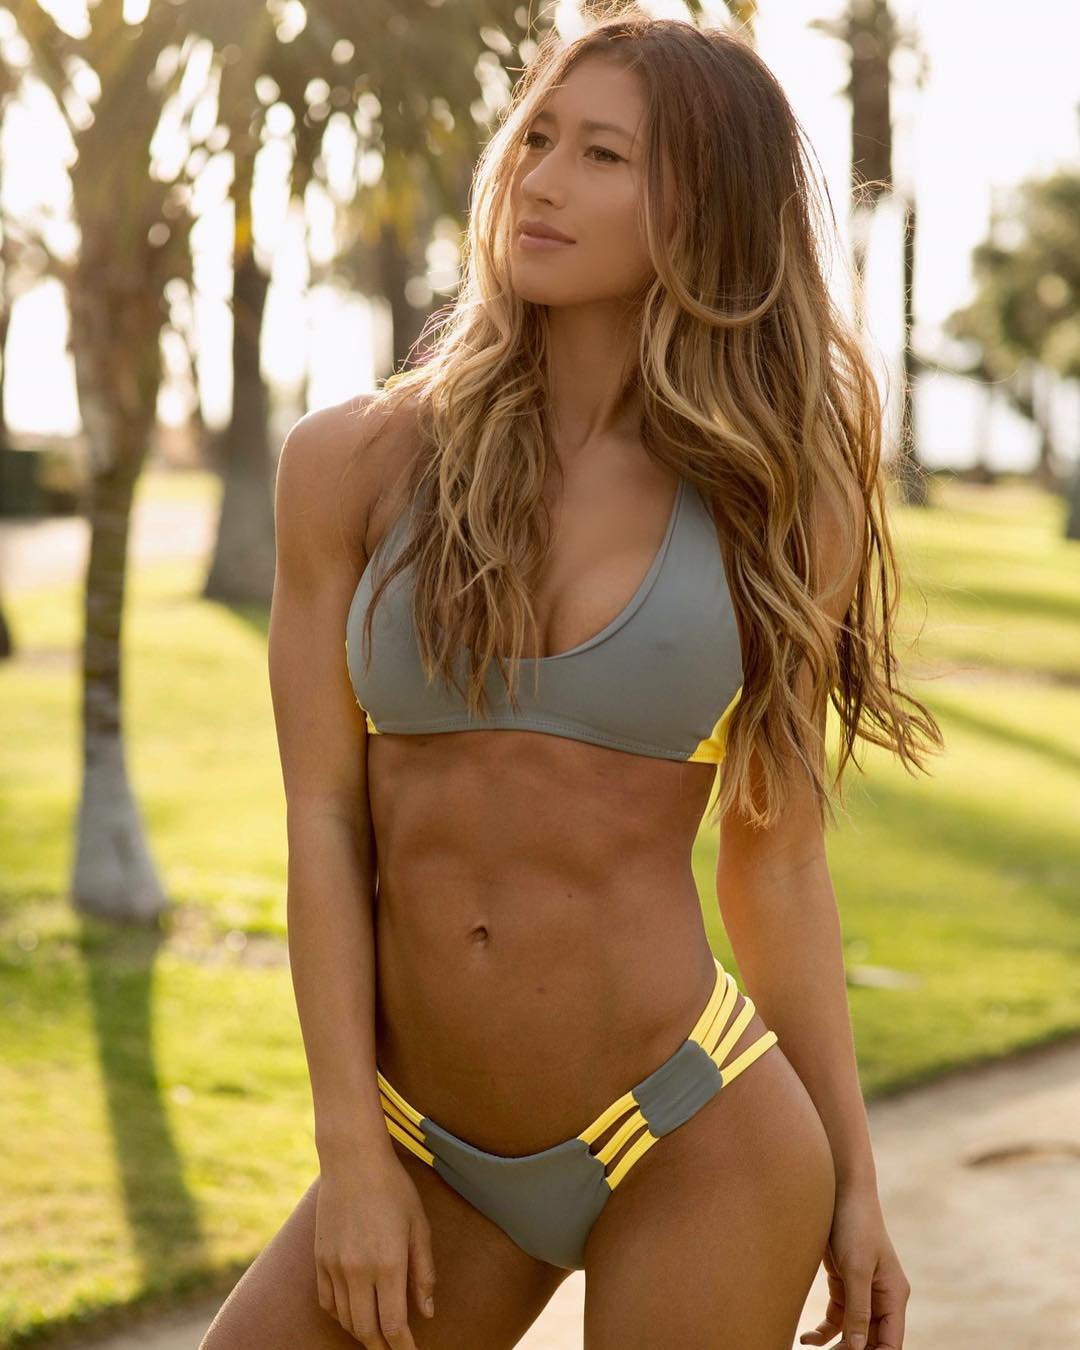 Bikini Karina Elle nude (36 photo), Sexy, Paparazzi, Boobs, bra 2019